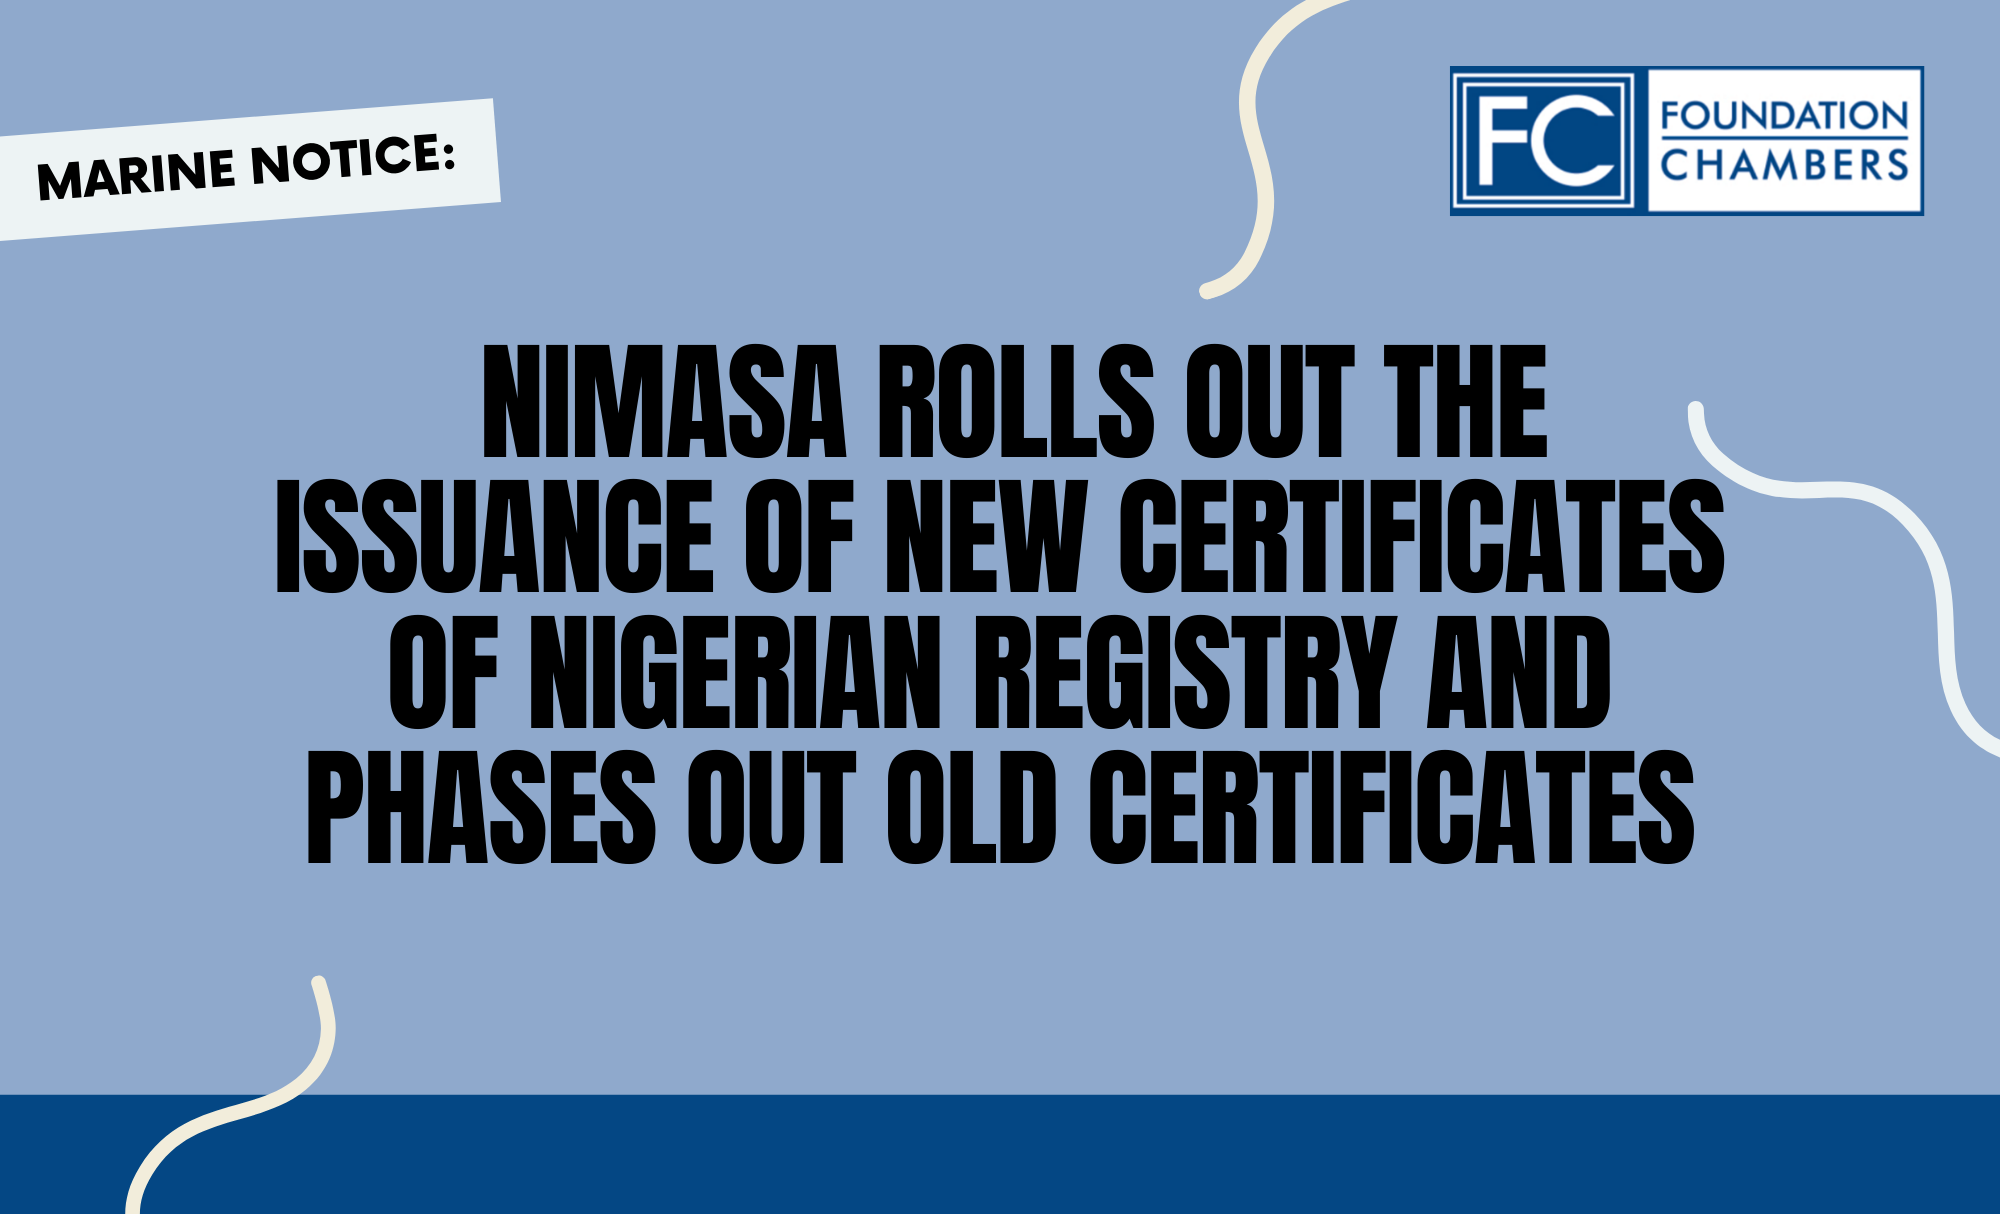 MARINE NOTICE – NIMASA ROLLS OUT THE ISSUANCE OF NEW CERTIFICATES OF NIGERIAN REGISTRY AND PHASES OUT OLD CERTIFICATES